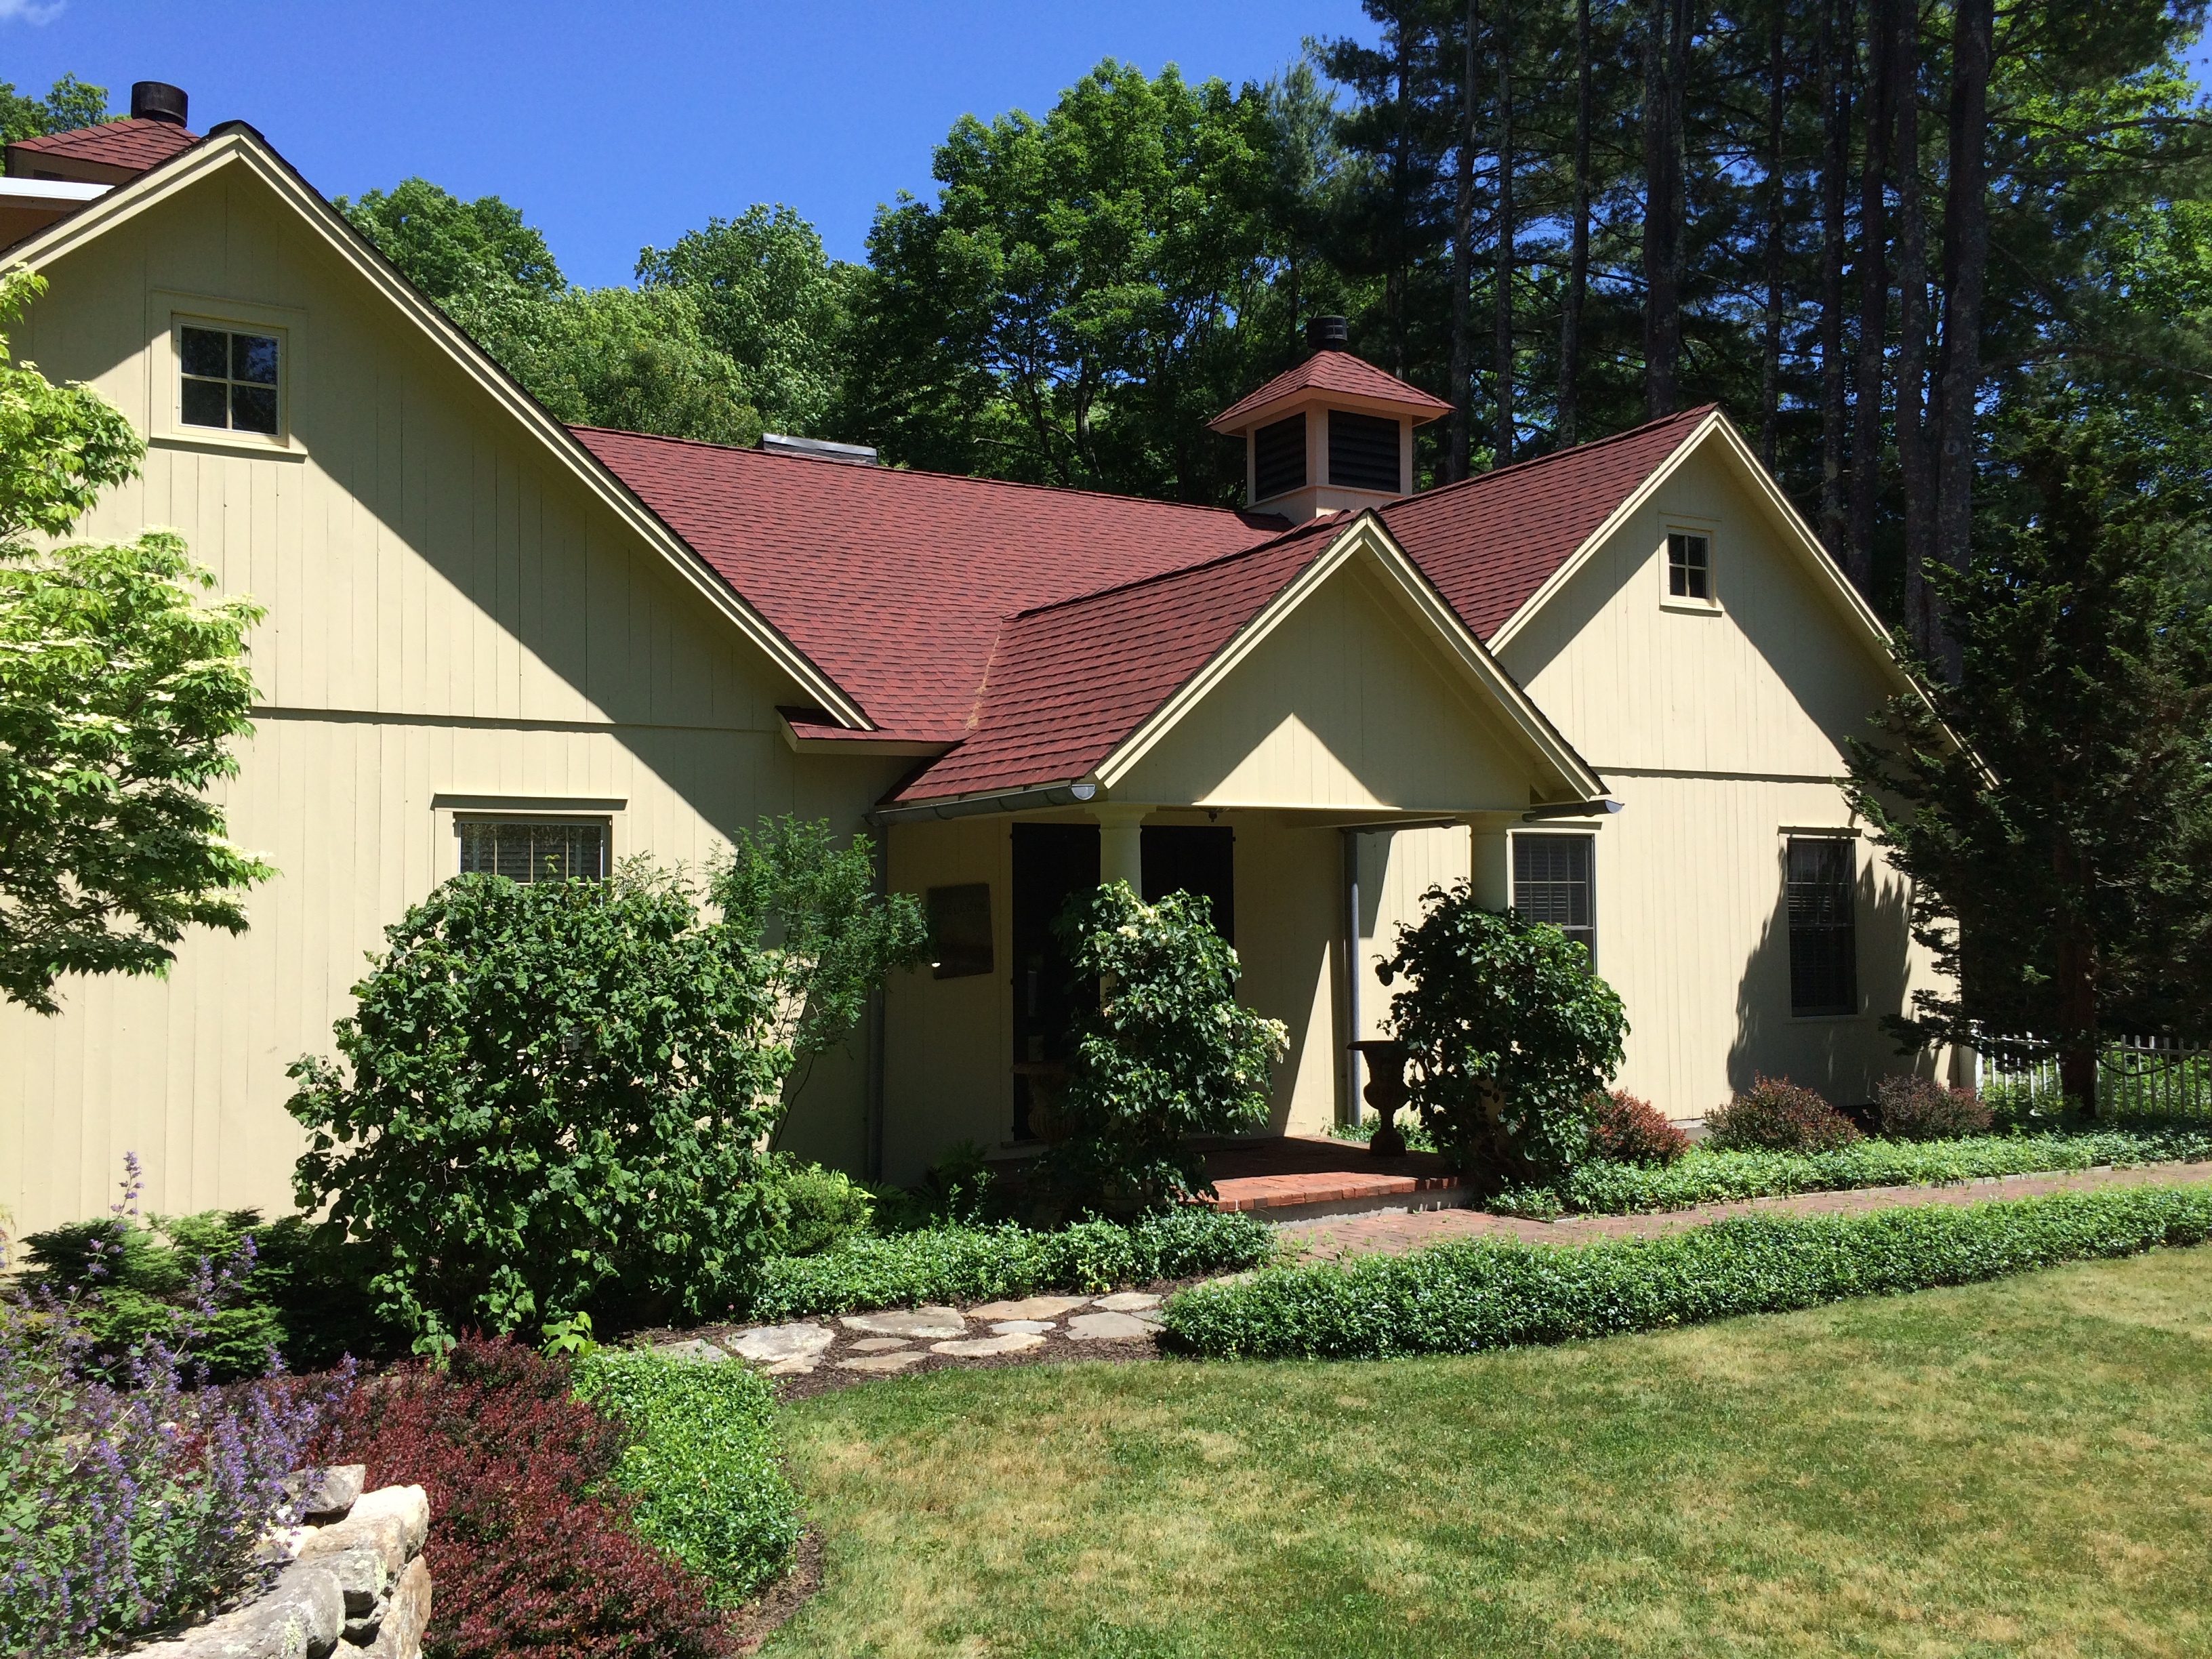 Single Family Home for Sale at Exquisite country home 156 Weekeepeemee Rd Woodbury, Connecticut 06798 United States